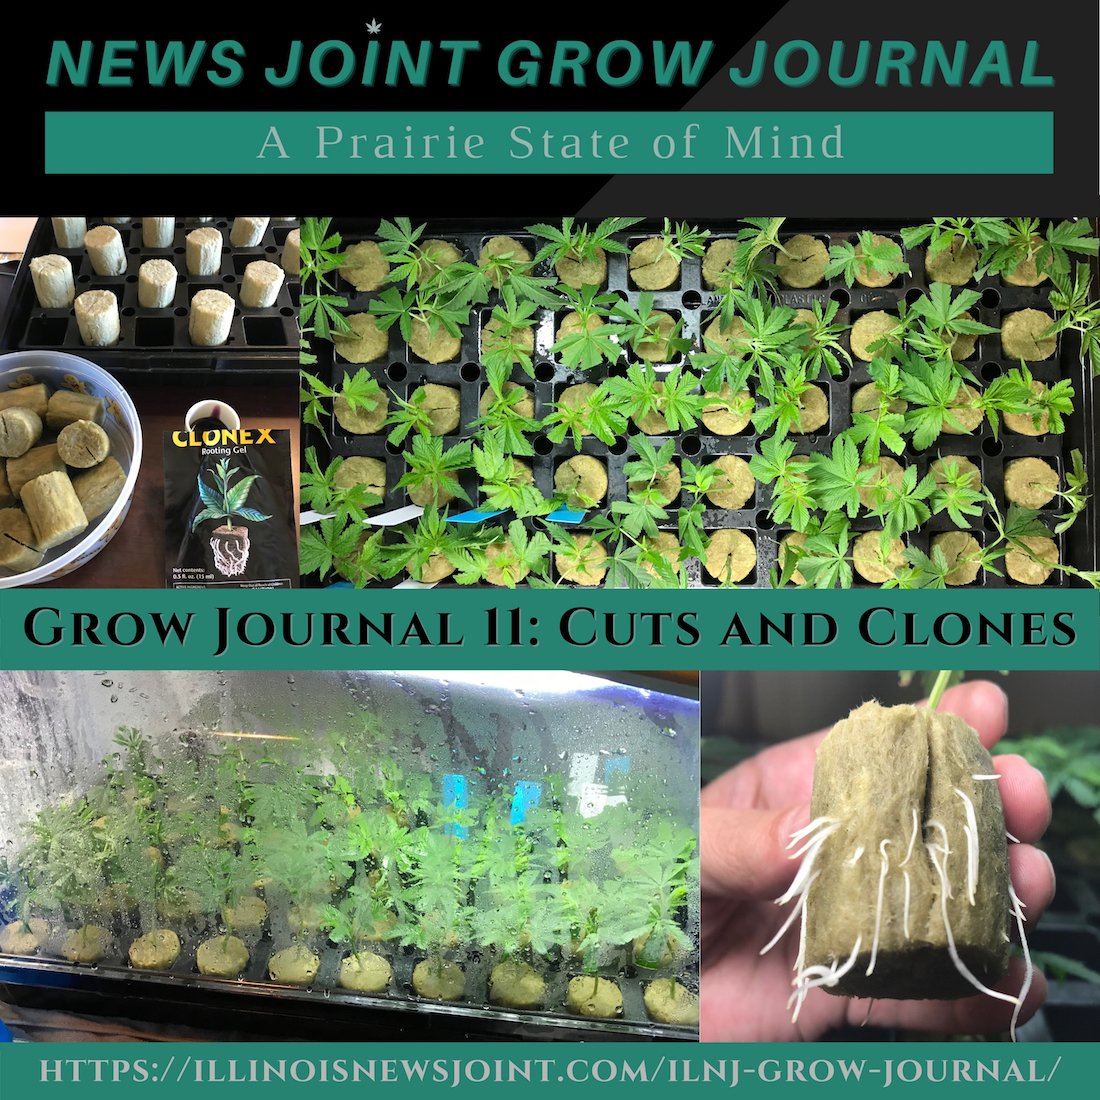 News Joint Grow Journal 11: Cuts and Clones